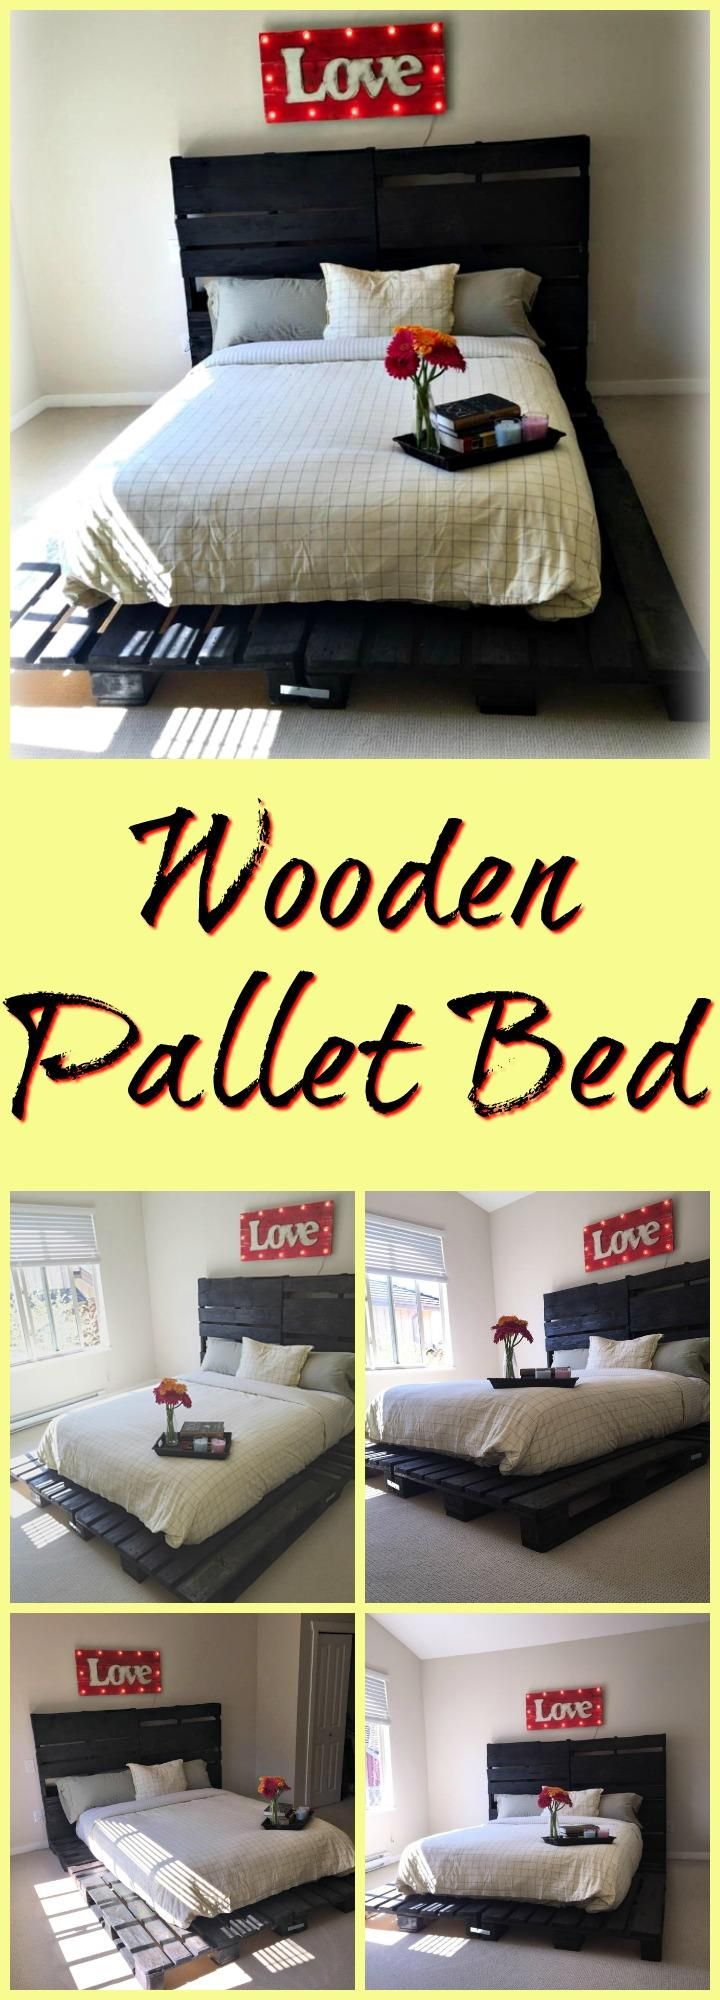 Wooden Pallet Bed out of only Pallets